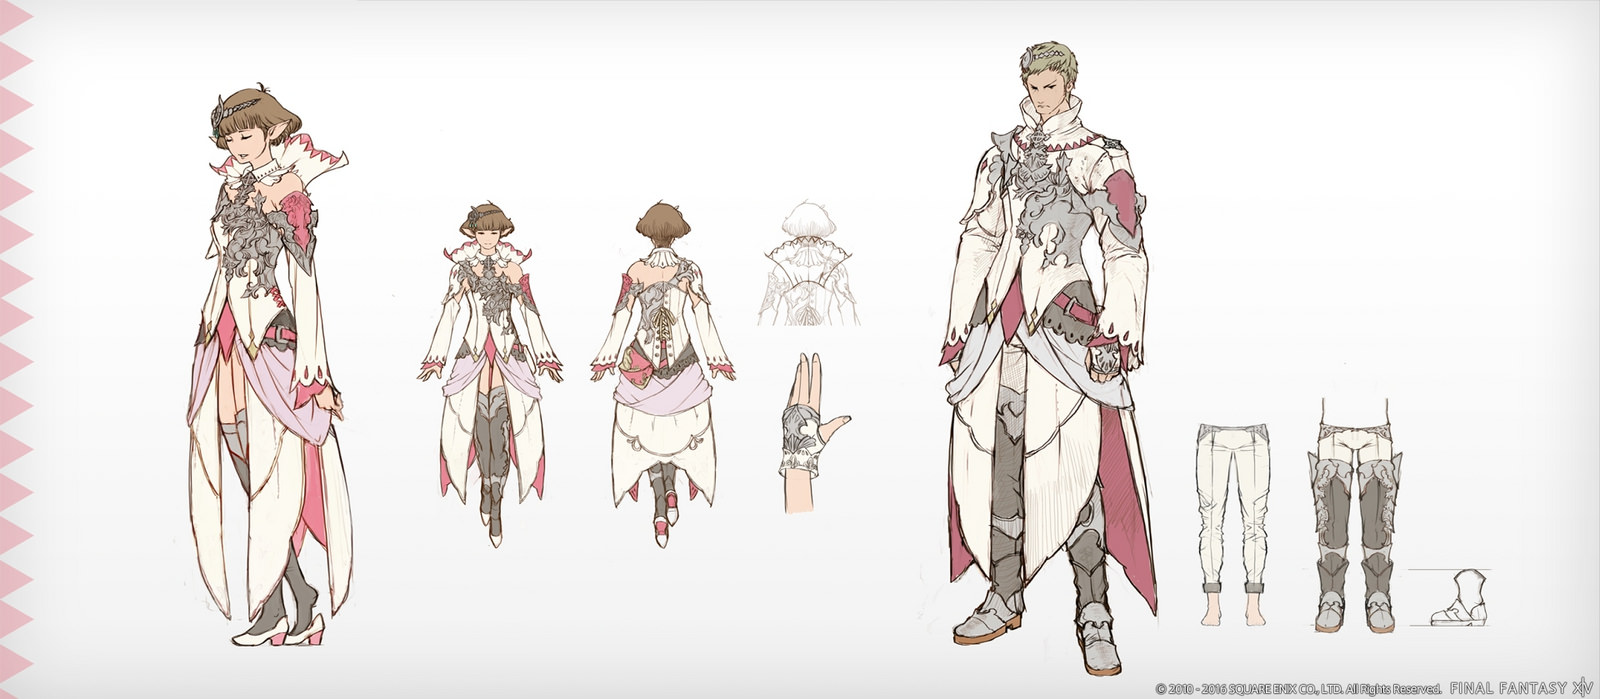 final fantasy 14 s next expansion is called stormblood and it s not